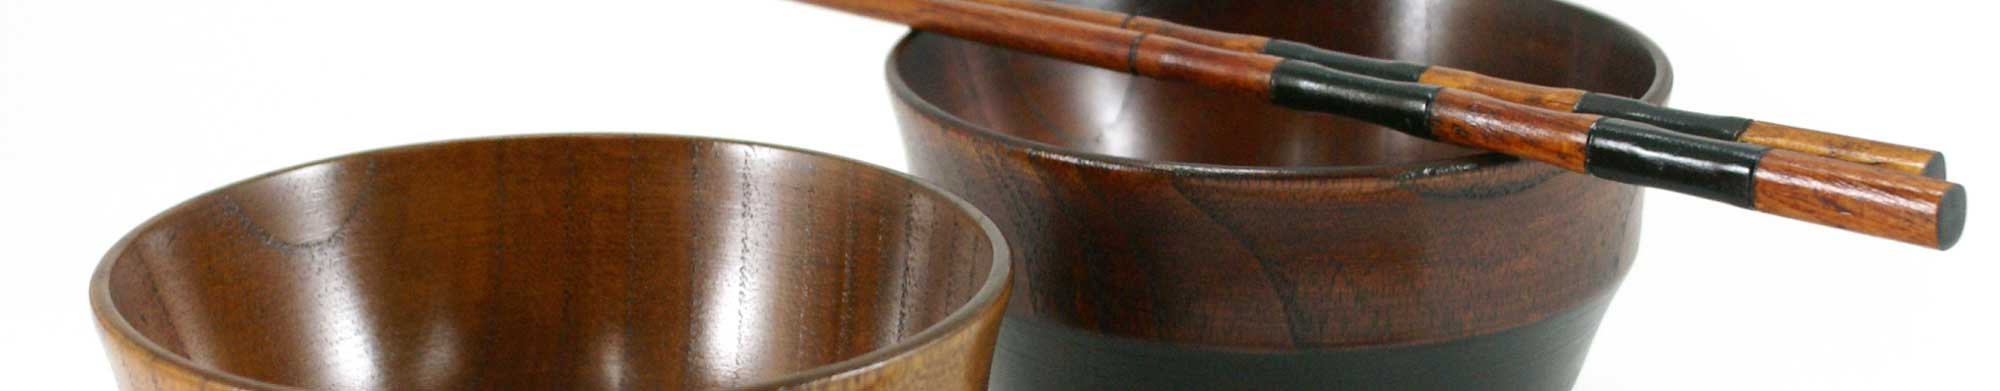 Japanese miso wooden soup bowls made in Japan